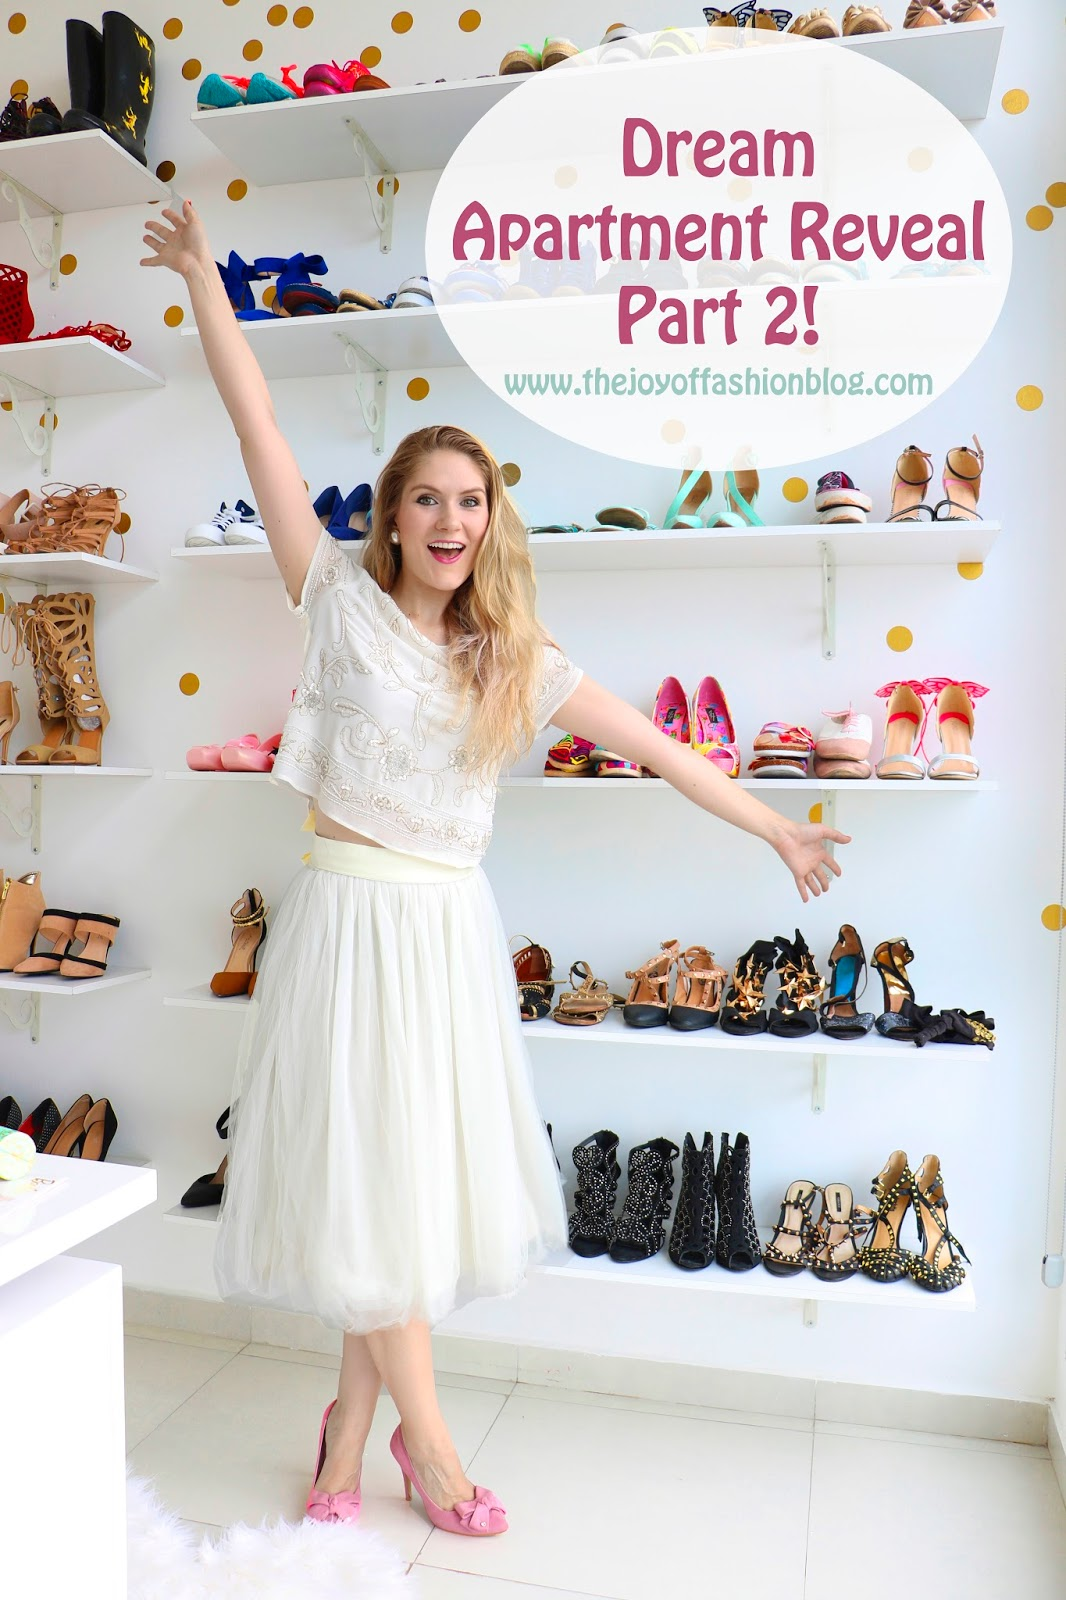 Ever wonder what a fashion blogger's closet looks like?? Click through to see the full reveal!